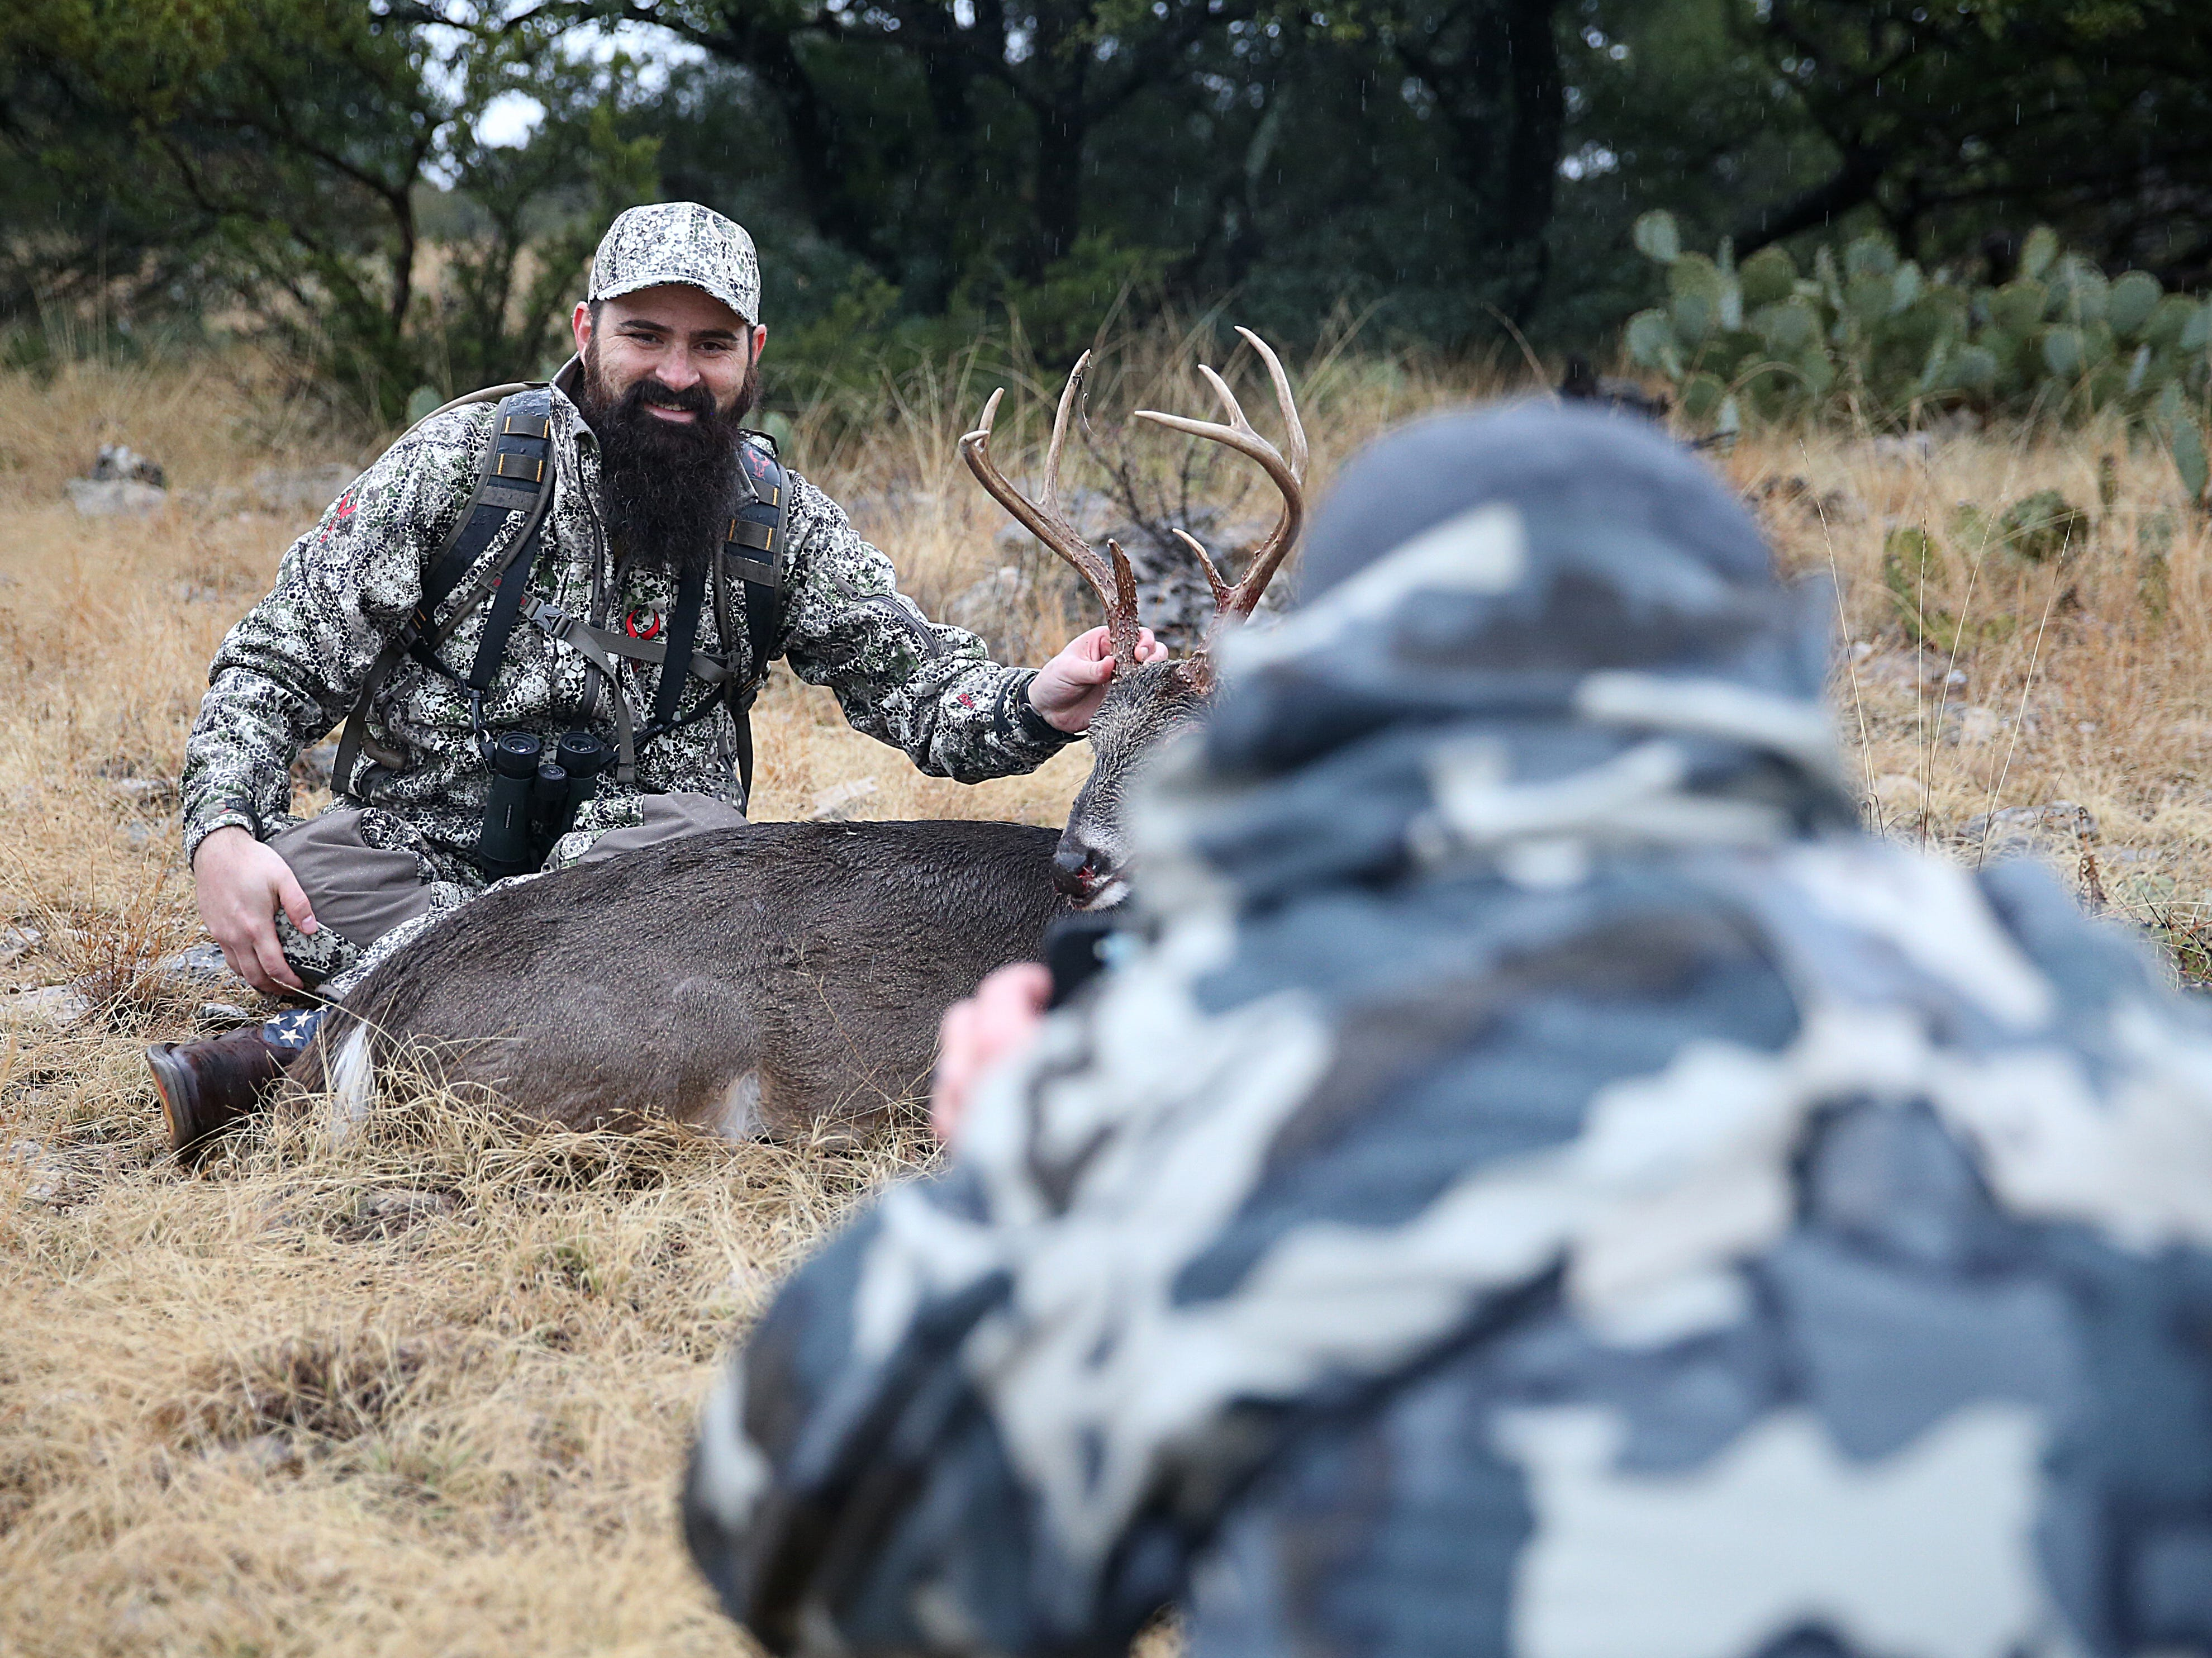 Joseph Lewis poses for a photo with his deer Friday, Dec. 7, 2018 during the annual deer hunt in Christoval sponsored by San Angelo Support for Veterans and Lone Star Warriors Outdoors.